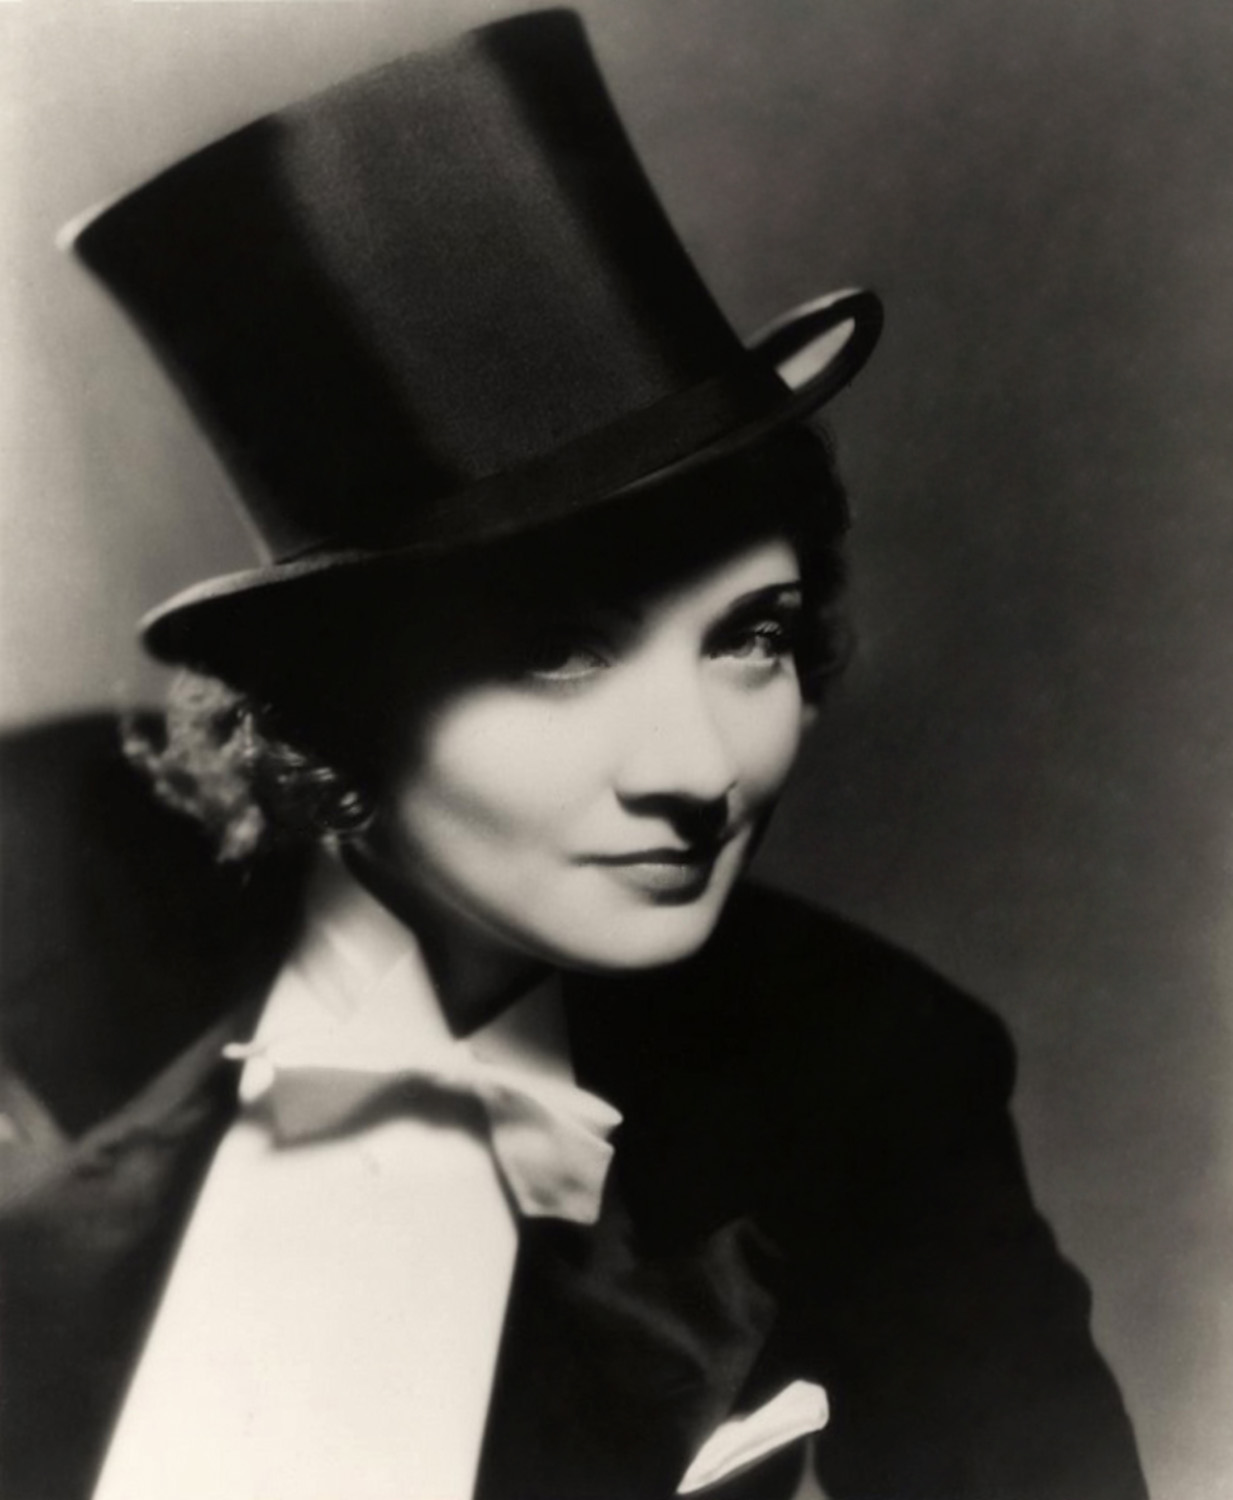 Morocco (film) 1930 Josef von Sternberg, director. Marlene Dietrich, cross dress, top hat.jpg